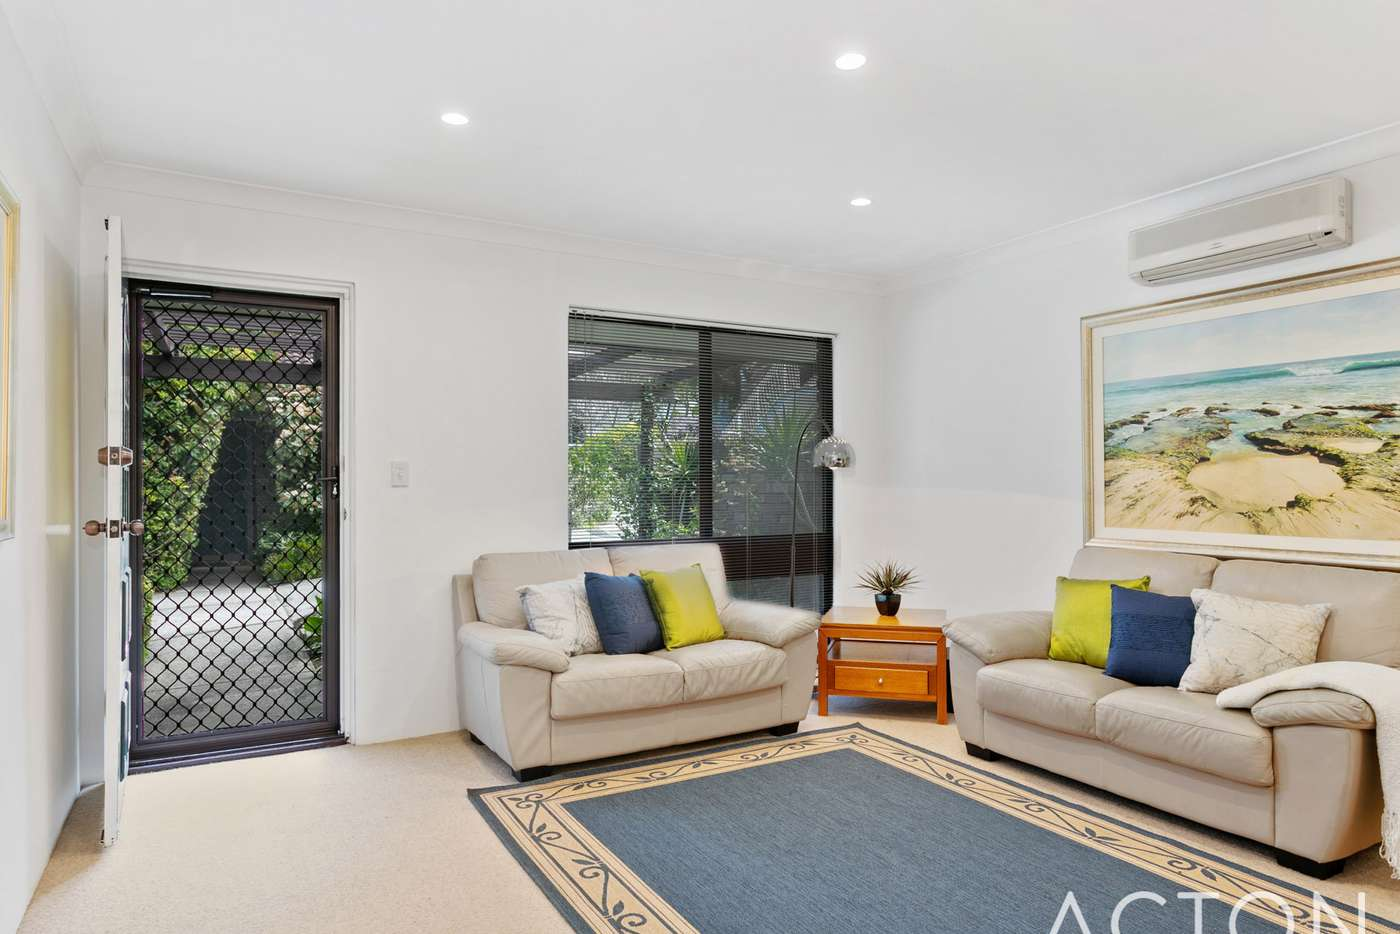 Sixth view of Homely house listing, 10/2 Waroonga Road, Nedlands WA 6009